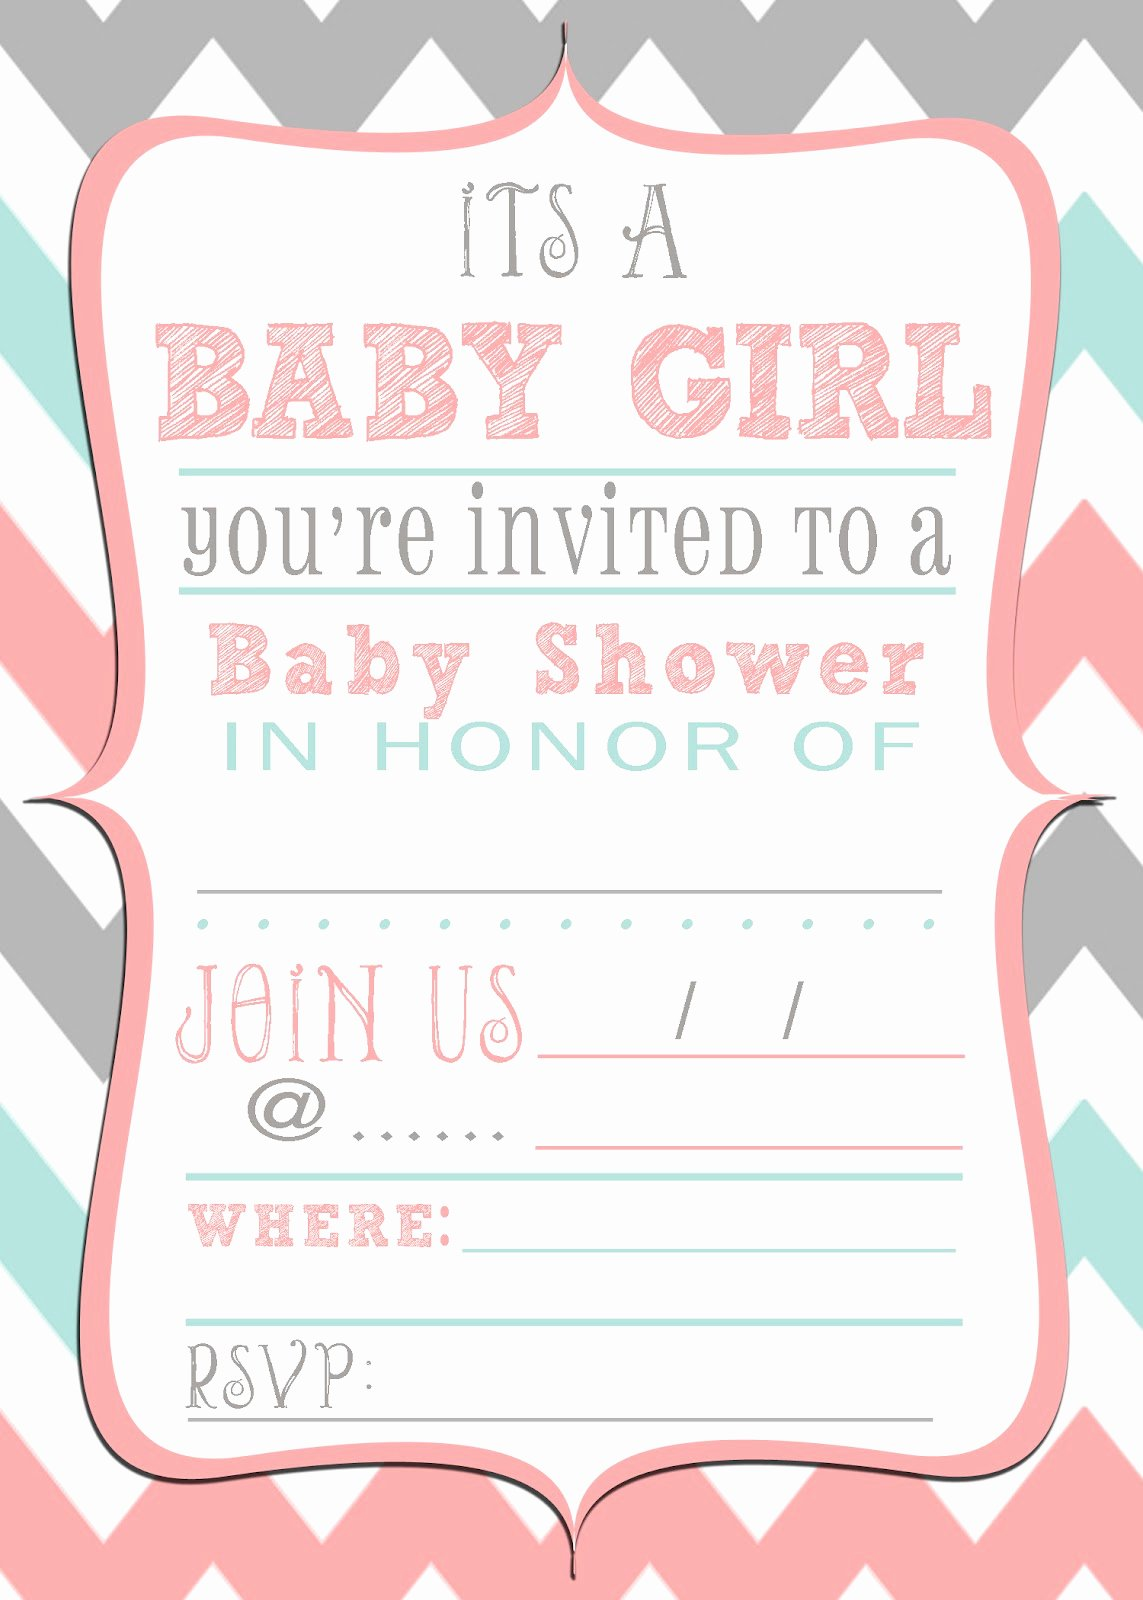 Baby Shower Invitation Template Free Best Of Mrs This and that Baby Shower Banner Free Downloads